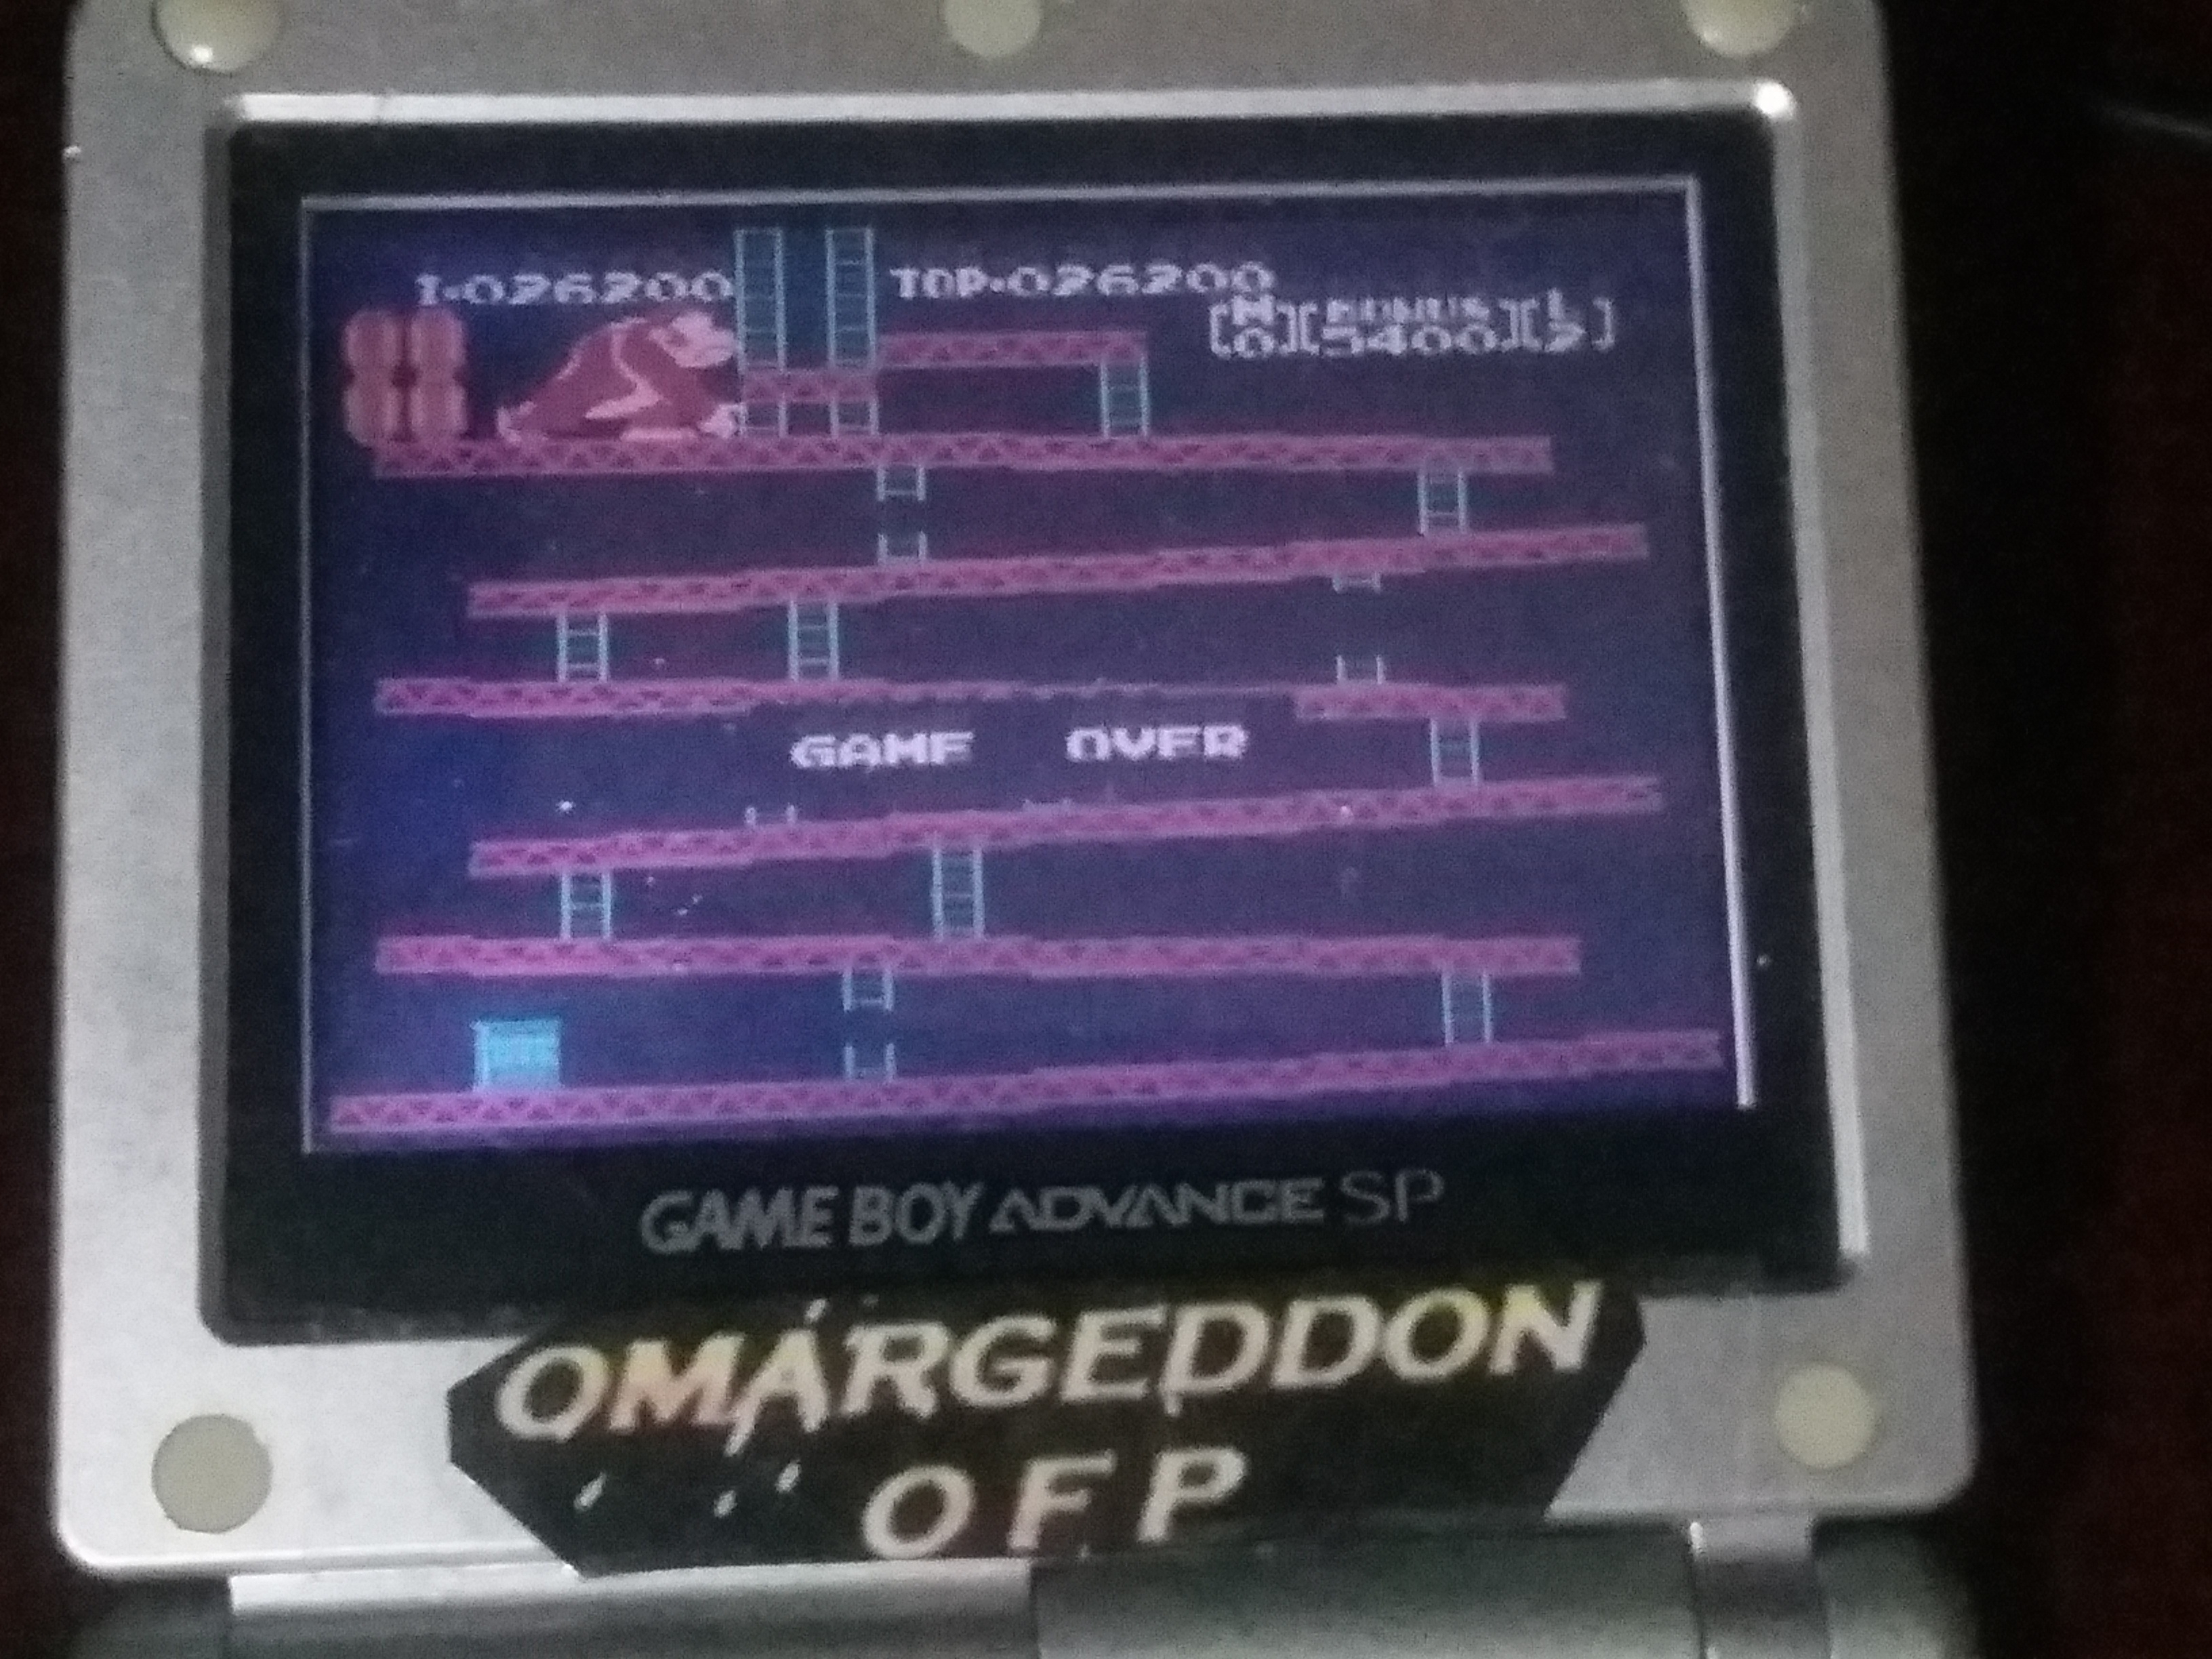 omargeddon: Famicom Mini: Vol. 2: Donkey Kong [Game B] (GBA) 26,200 points on 2018-04-25 20:04:57